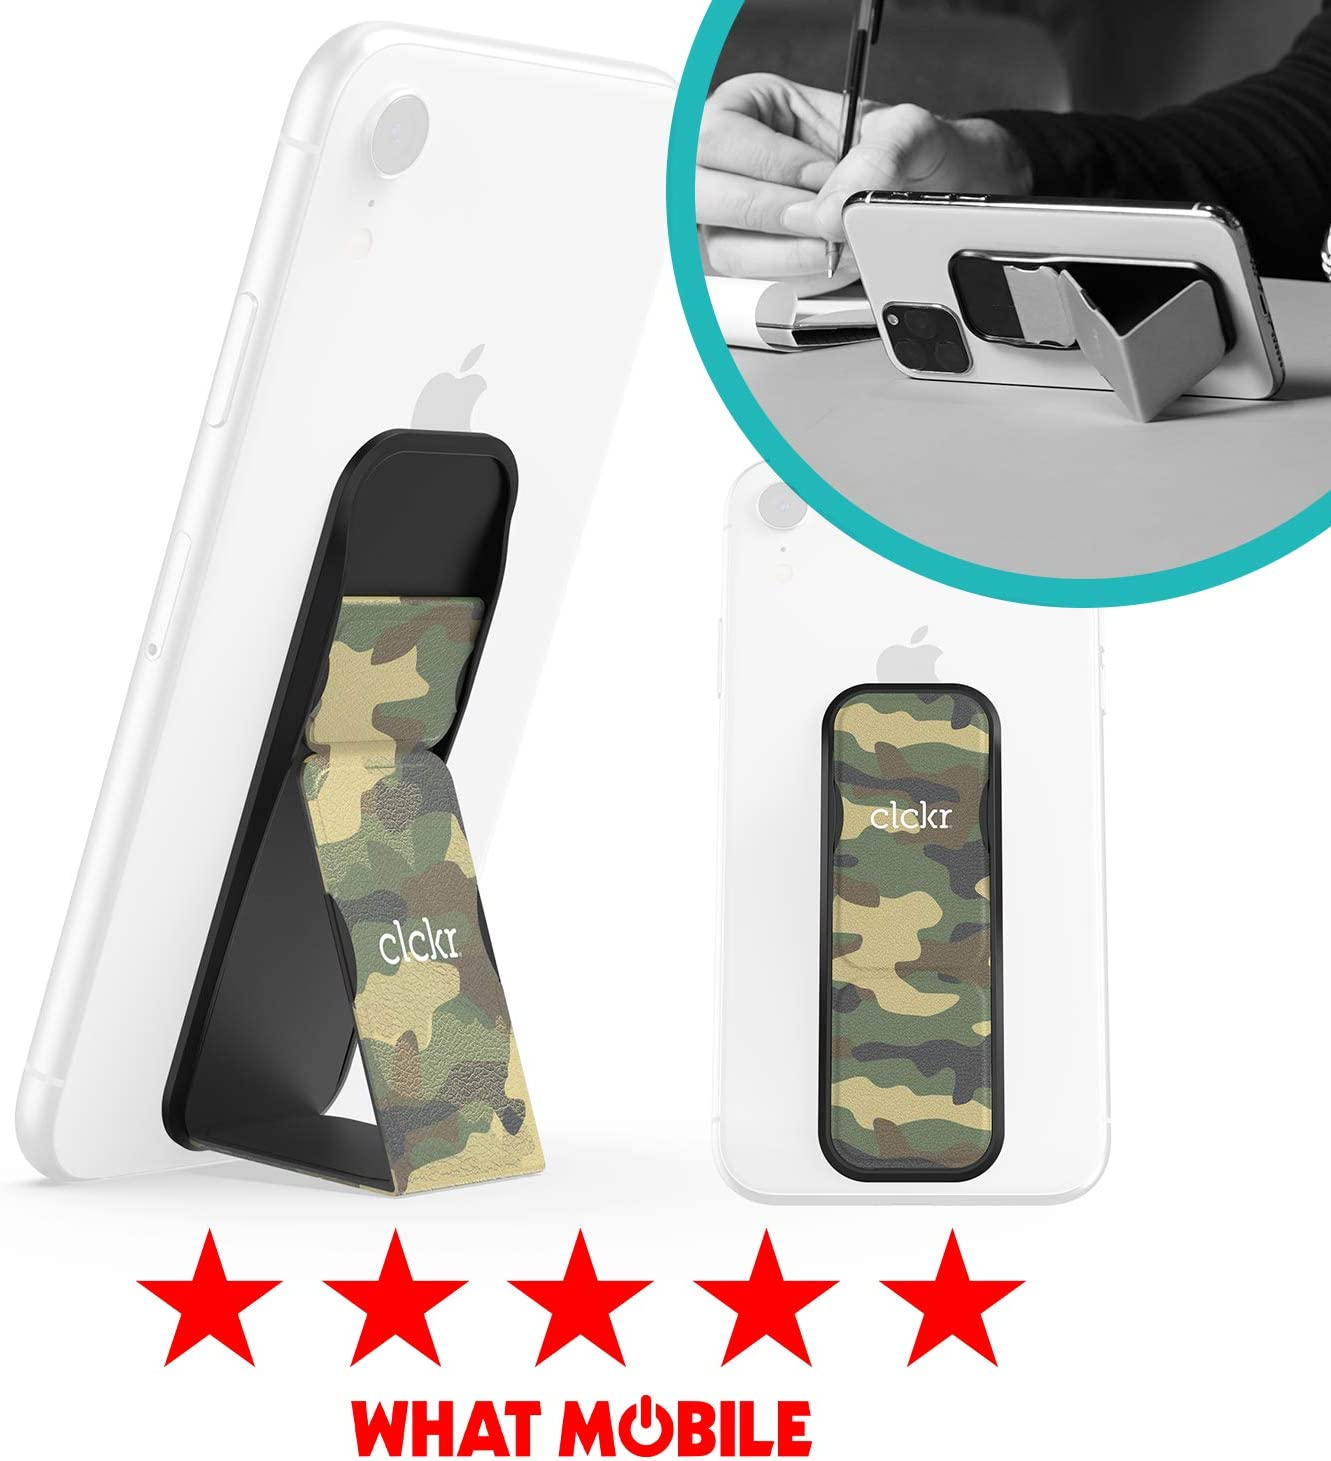 Camo Green CLCKR Phone Stand Multi Viewing Modes Compatible with Universal Devices Including iPhone 11//11 Pro//X//XS//XR Samsung Galaxy S8//S9//S10 and Many More